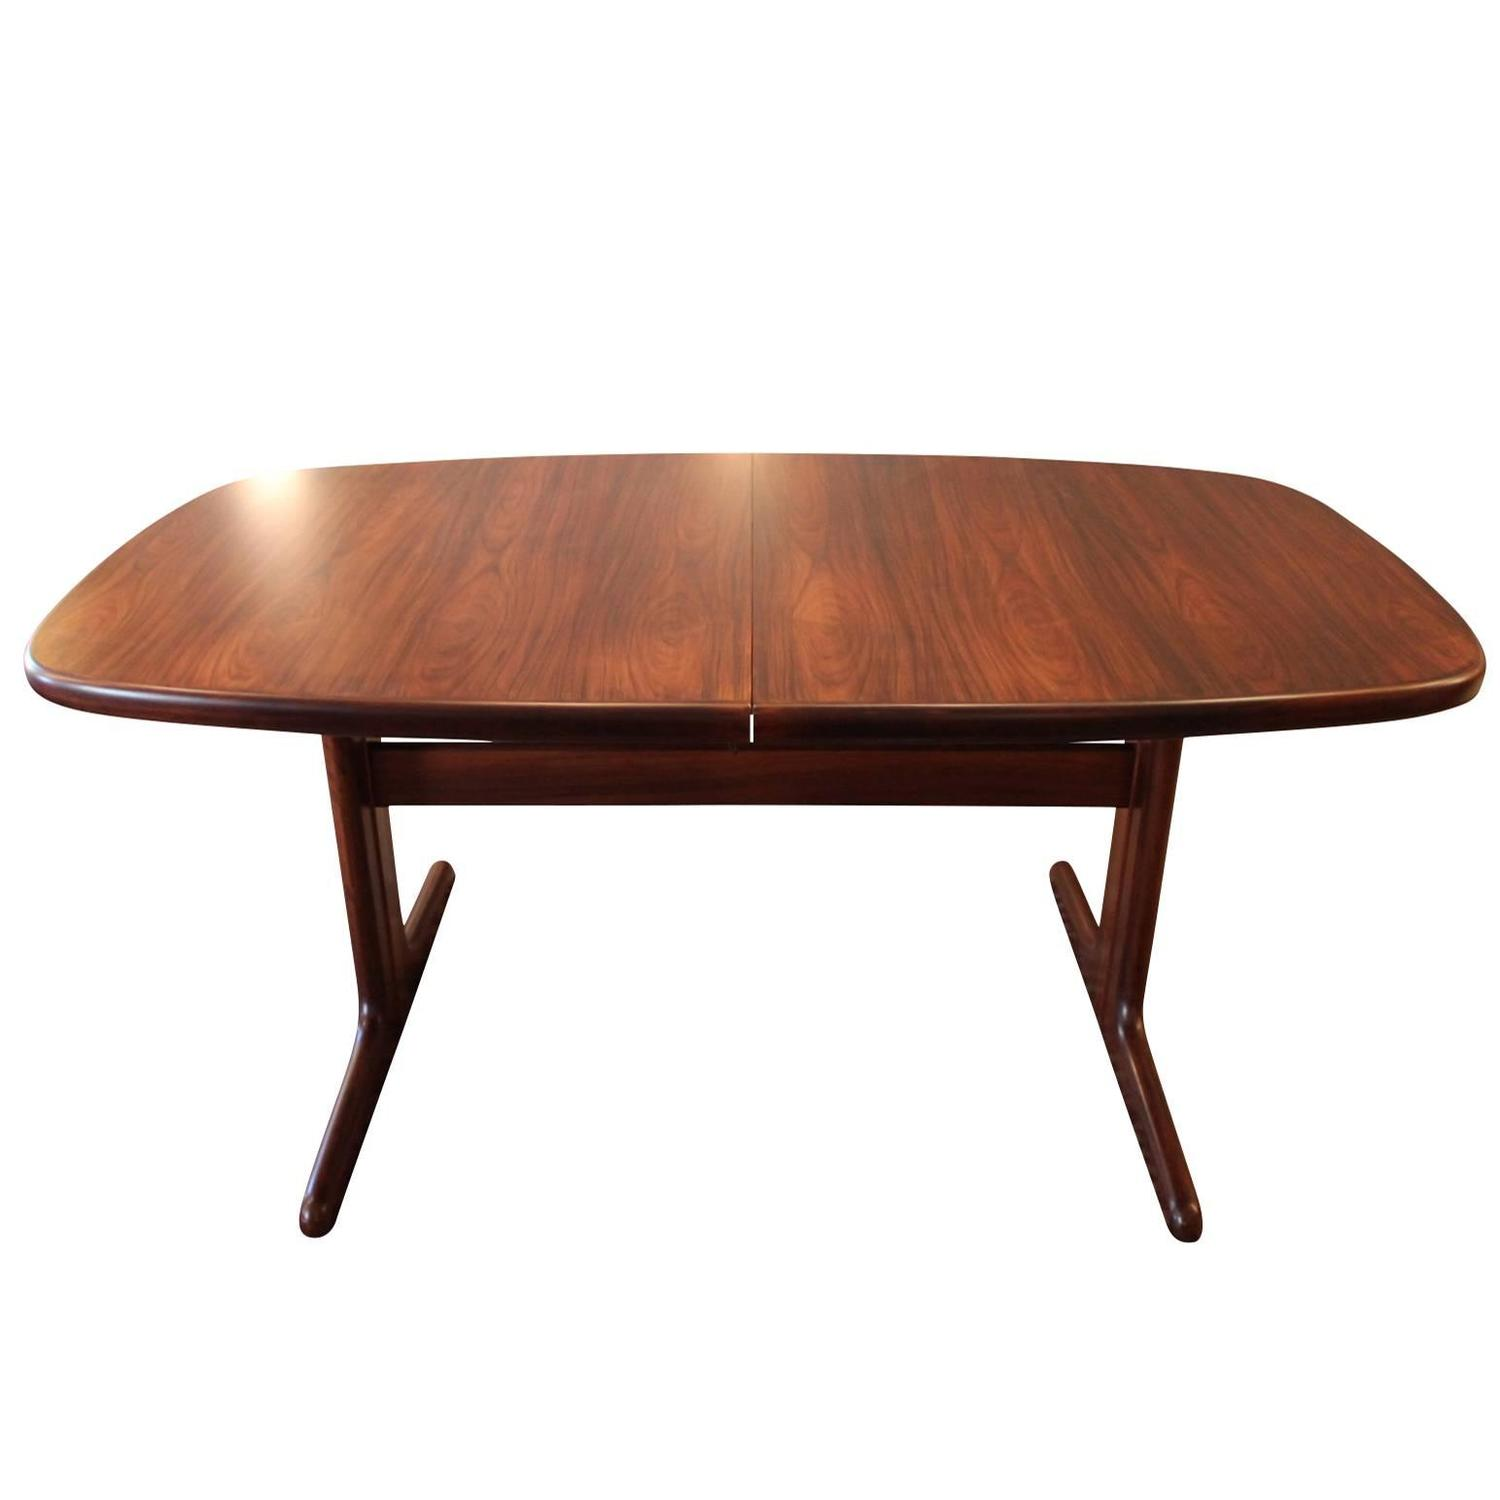 Dining Table In Rosewood By Skovby Furniture Factory Circa 1960 At 1stdibs